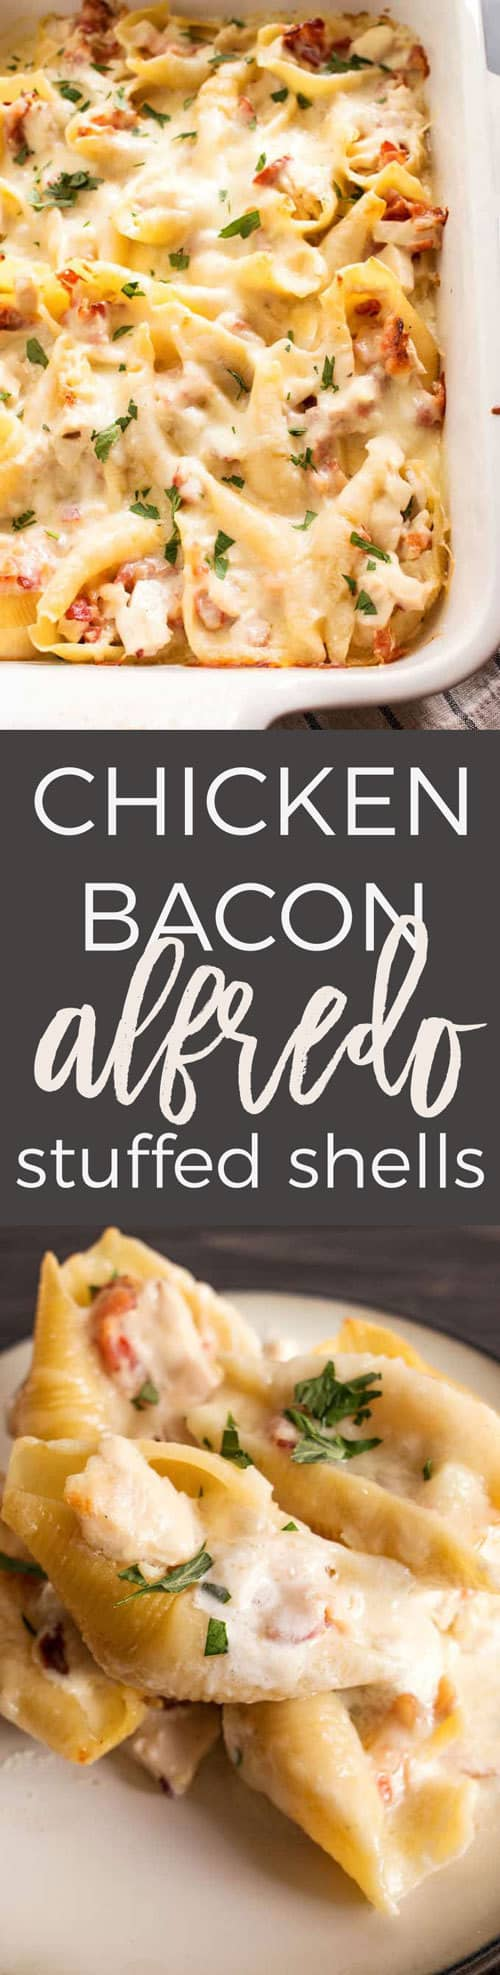 Chicken Bacon Alfredo Stuffed Shells pin